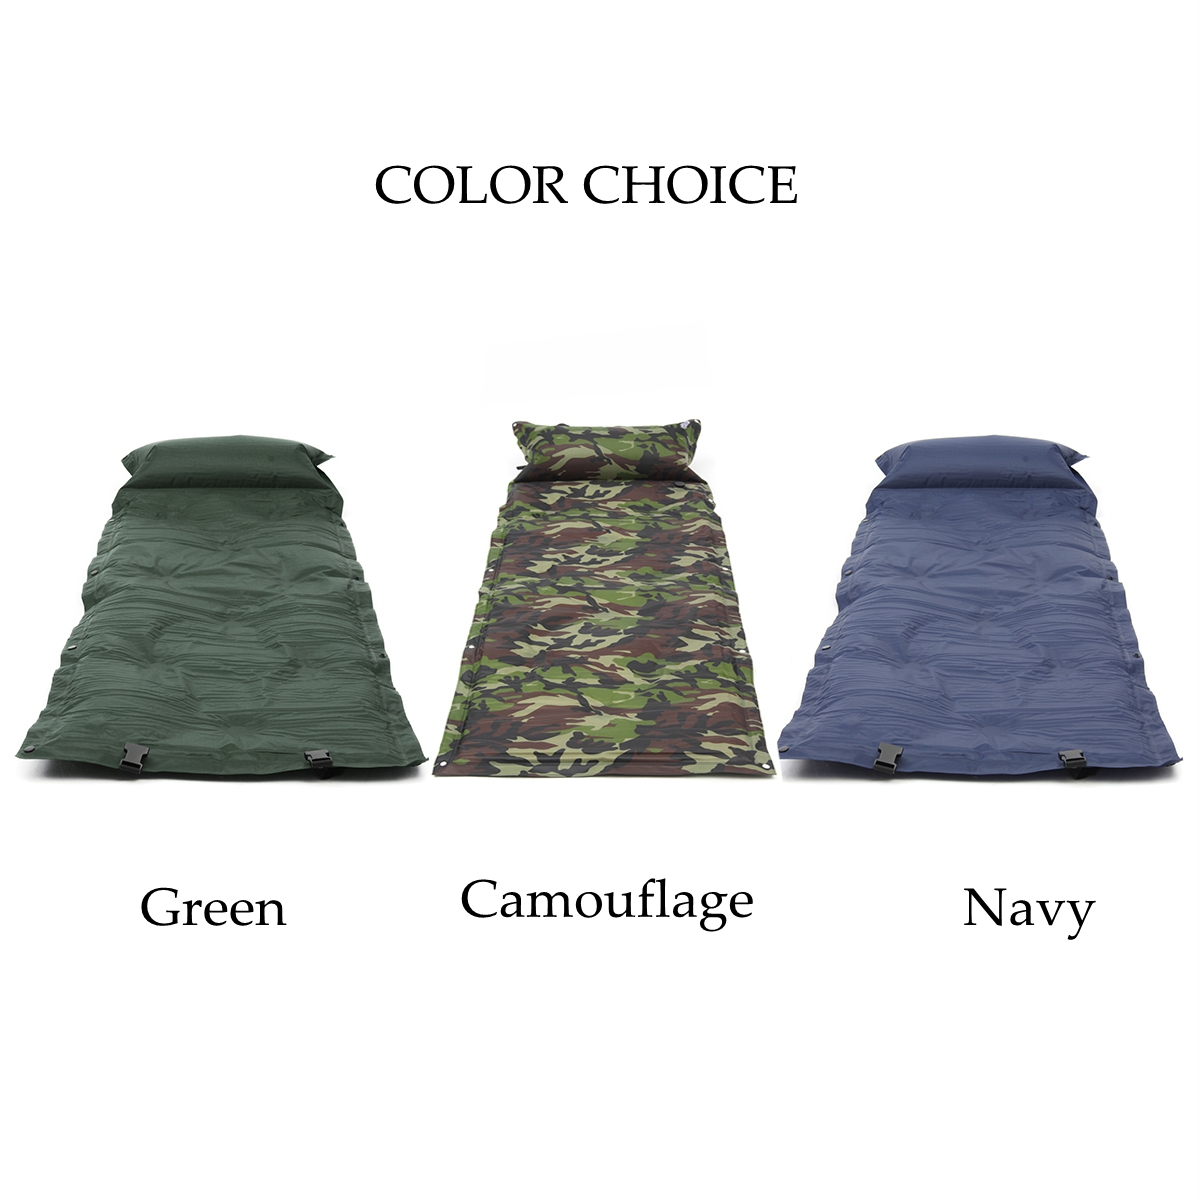 Single Self-Inflating Camping Mat Inflatable Air Mattress Sleeping Pad With Pillow